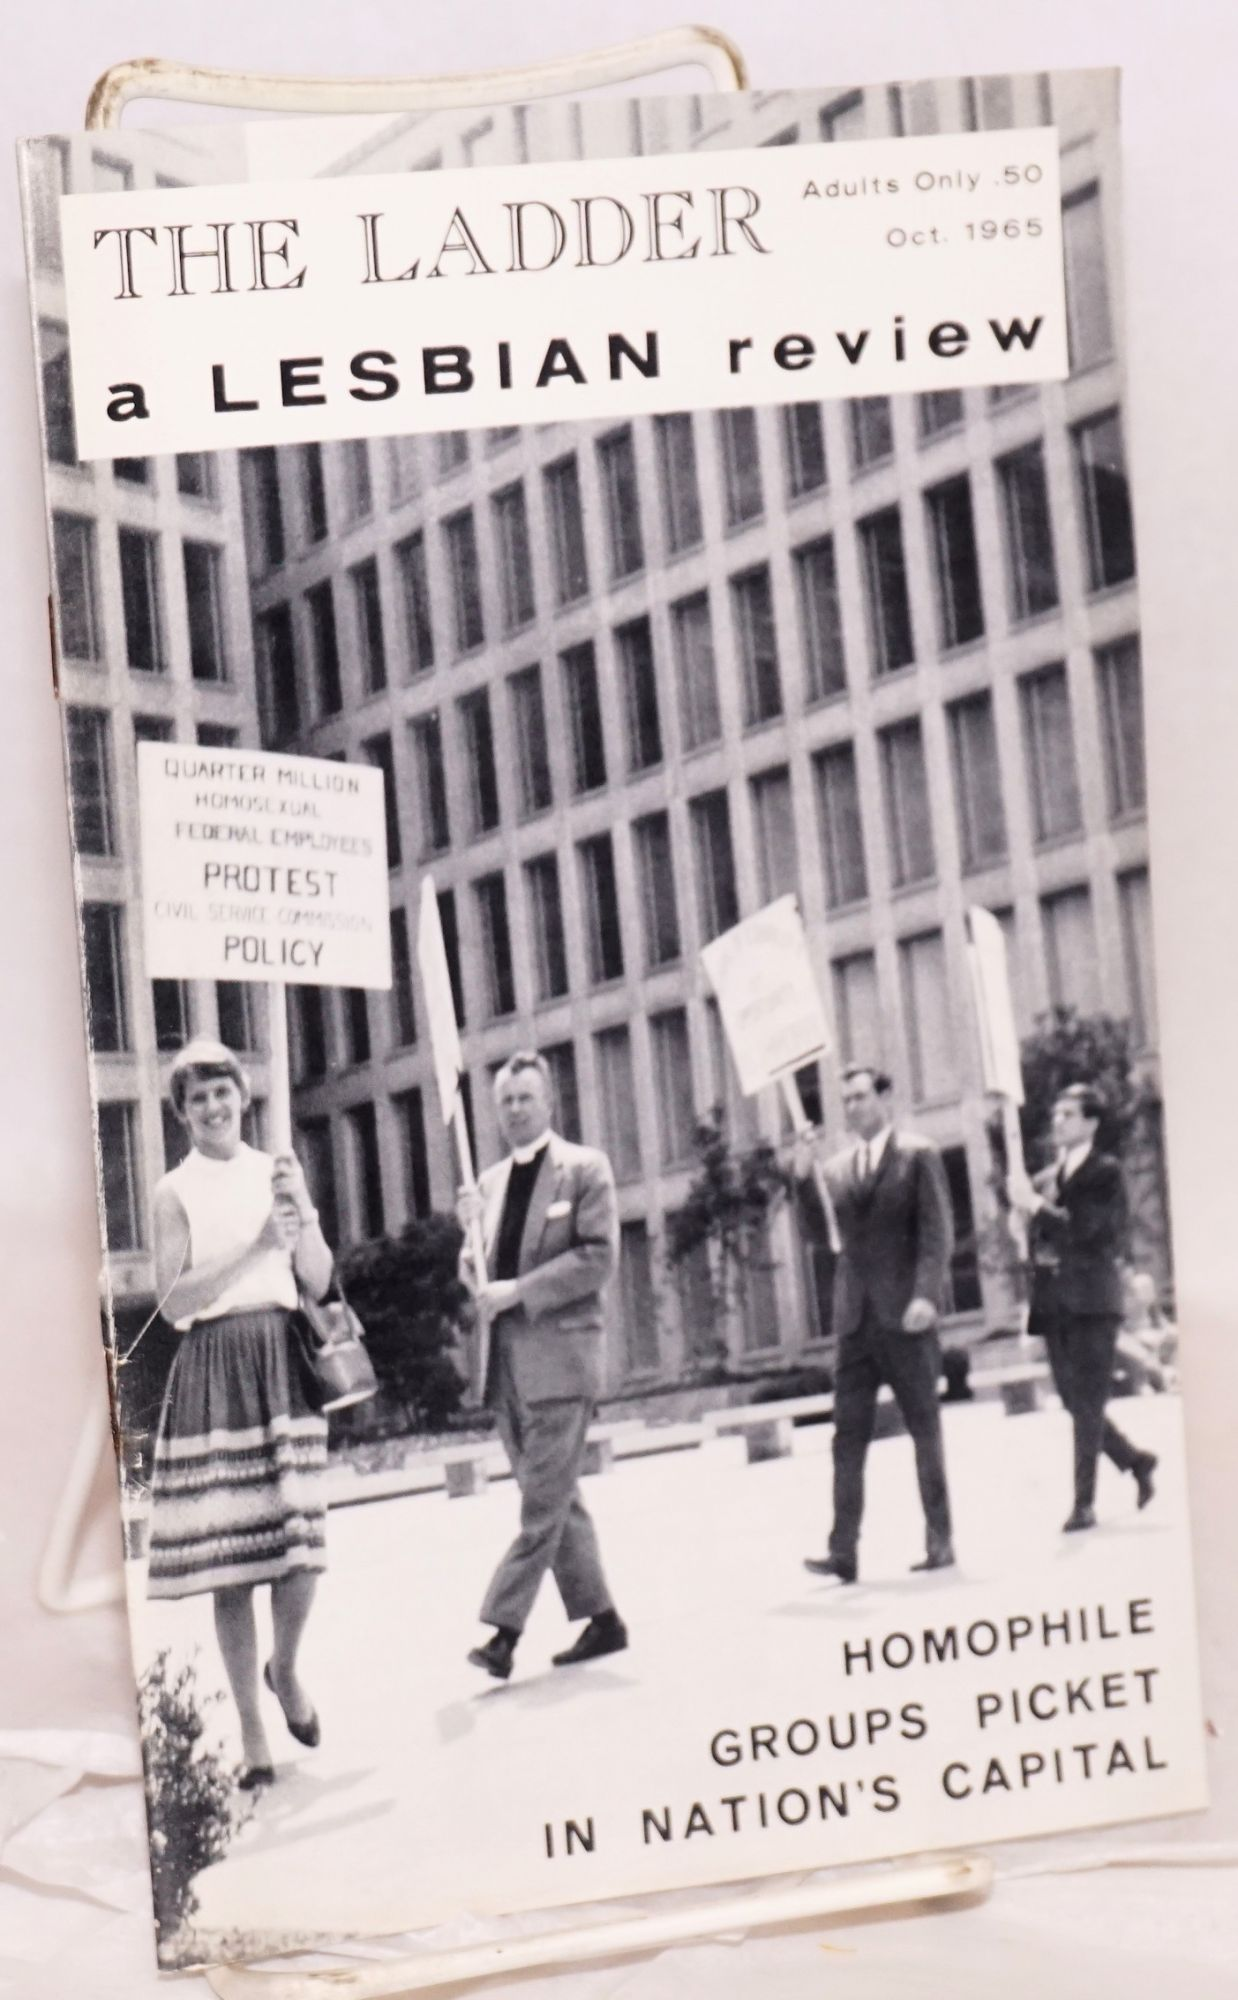 Queer Activism Before Stonewall: A short list